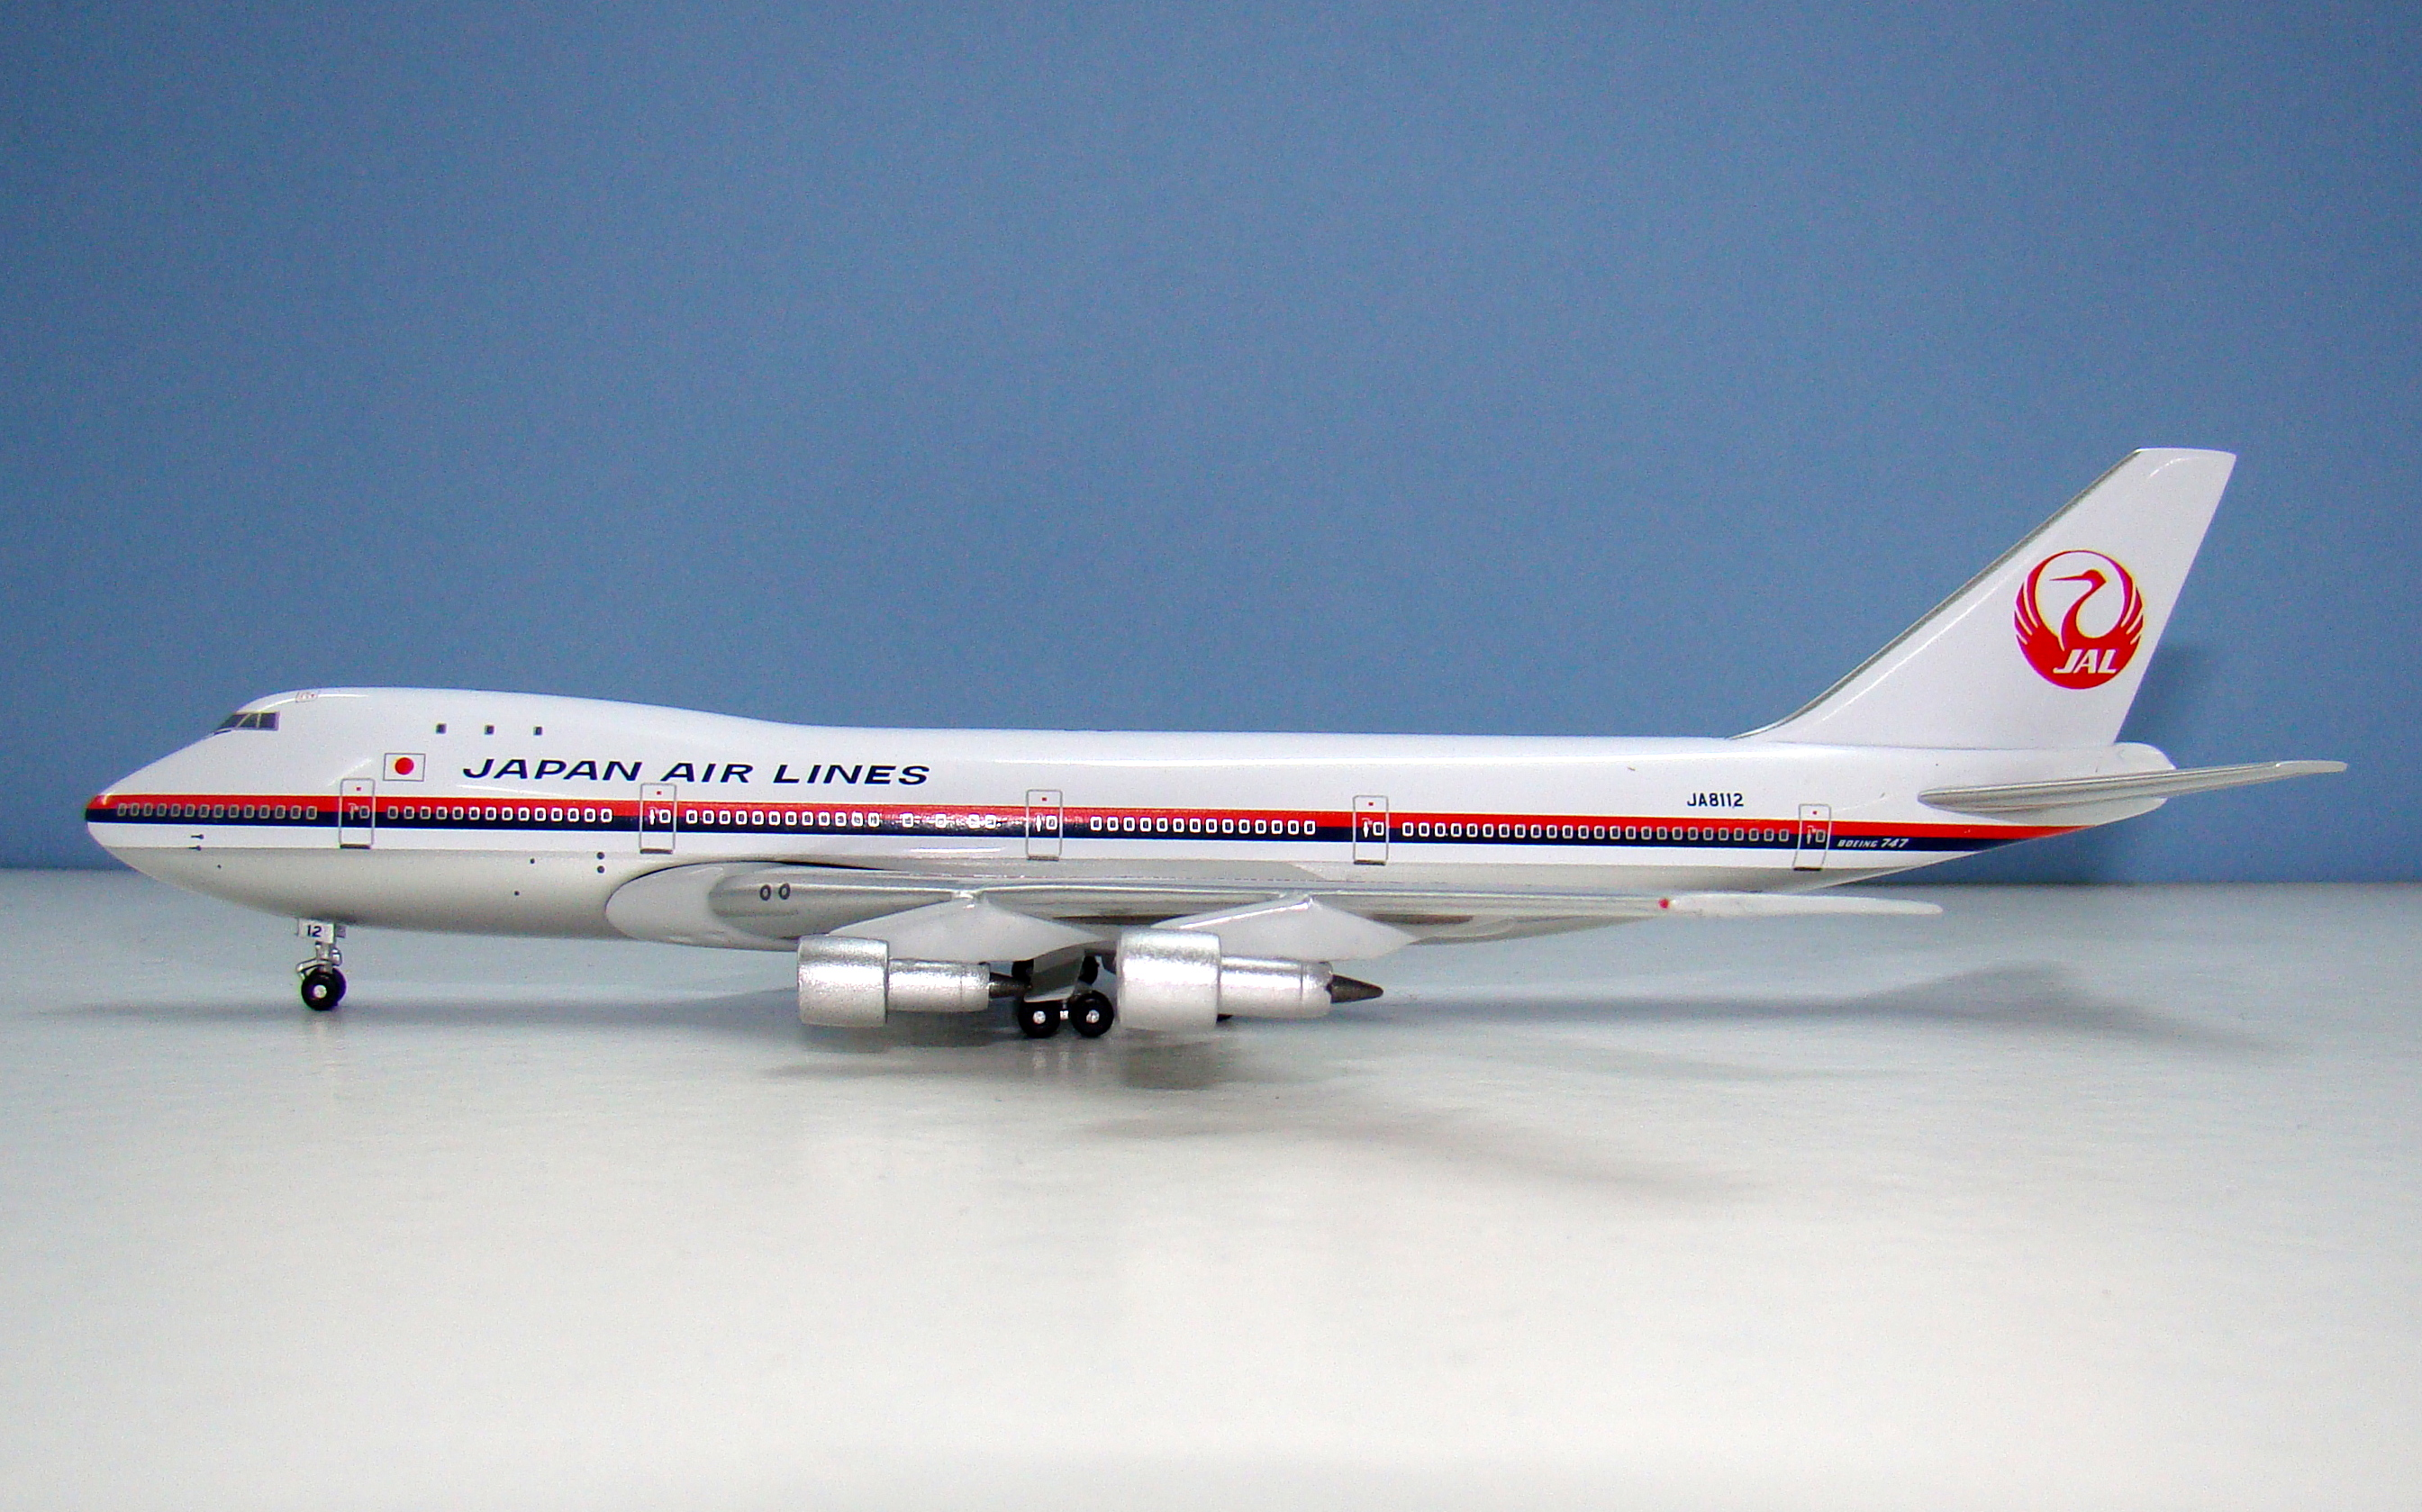 Japan Air Lines Boeing 747-146 JA8112 Apollo 1:400 Scale Model Airliner